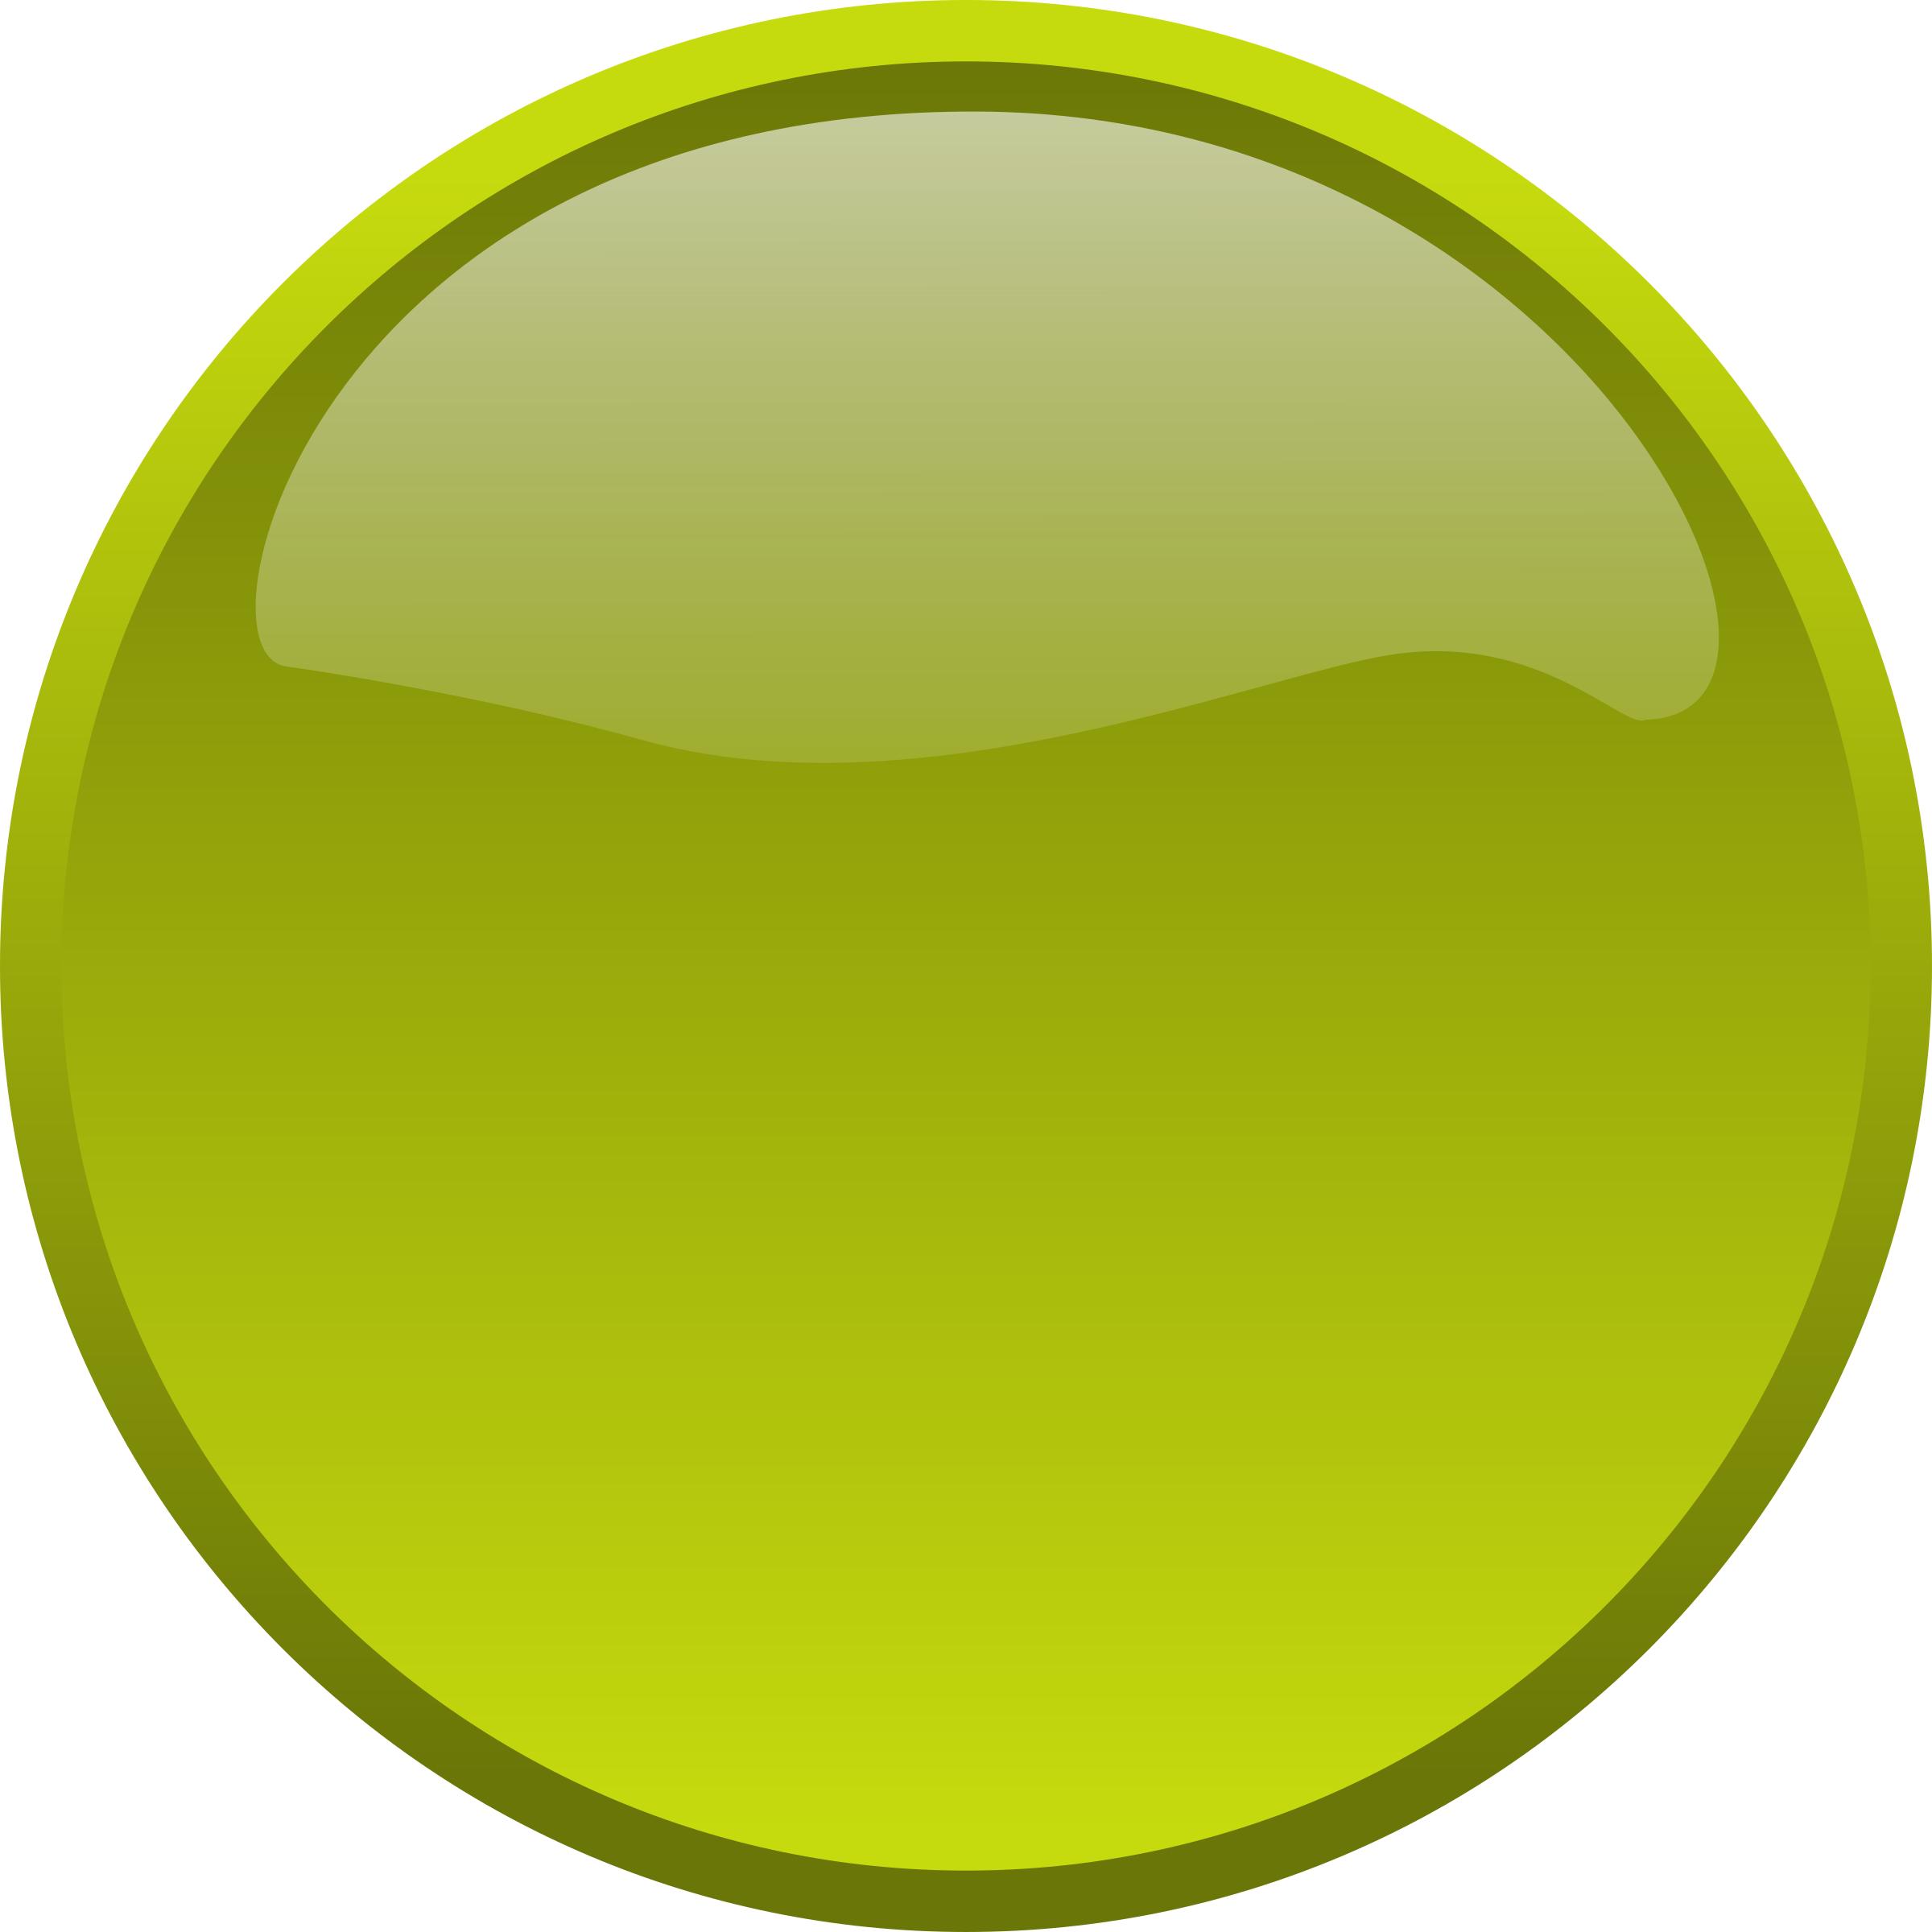 Half Circle Shape Clipart.